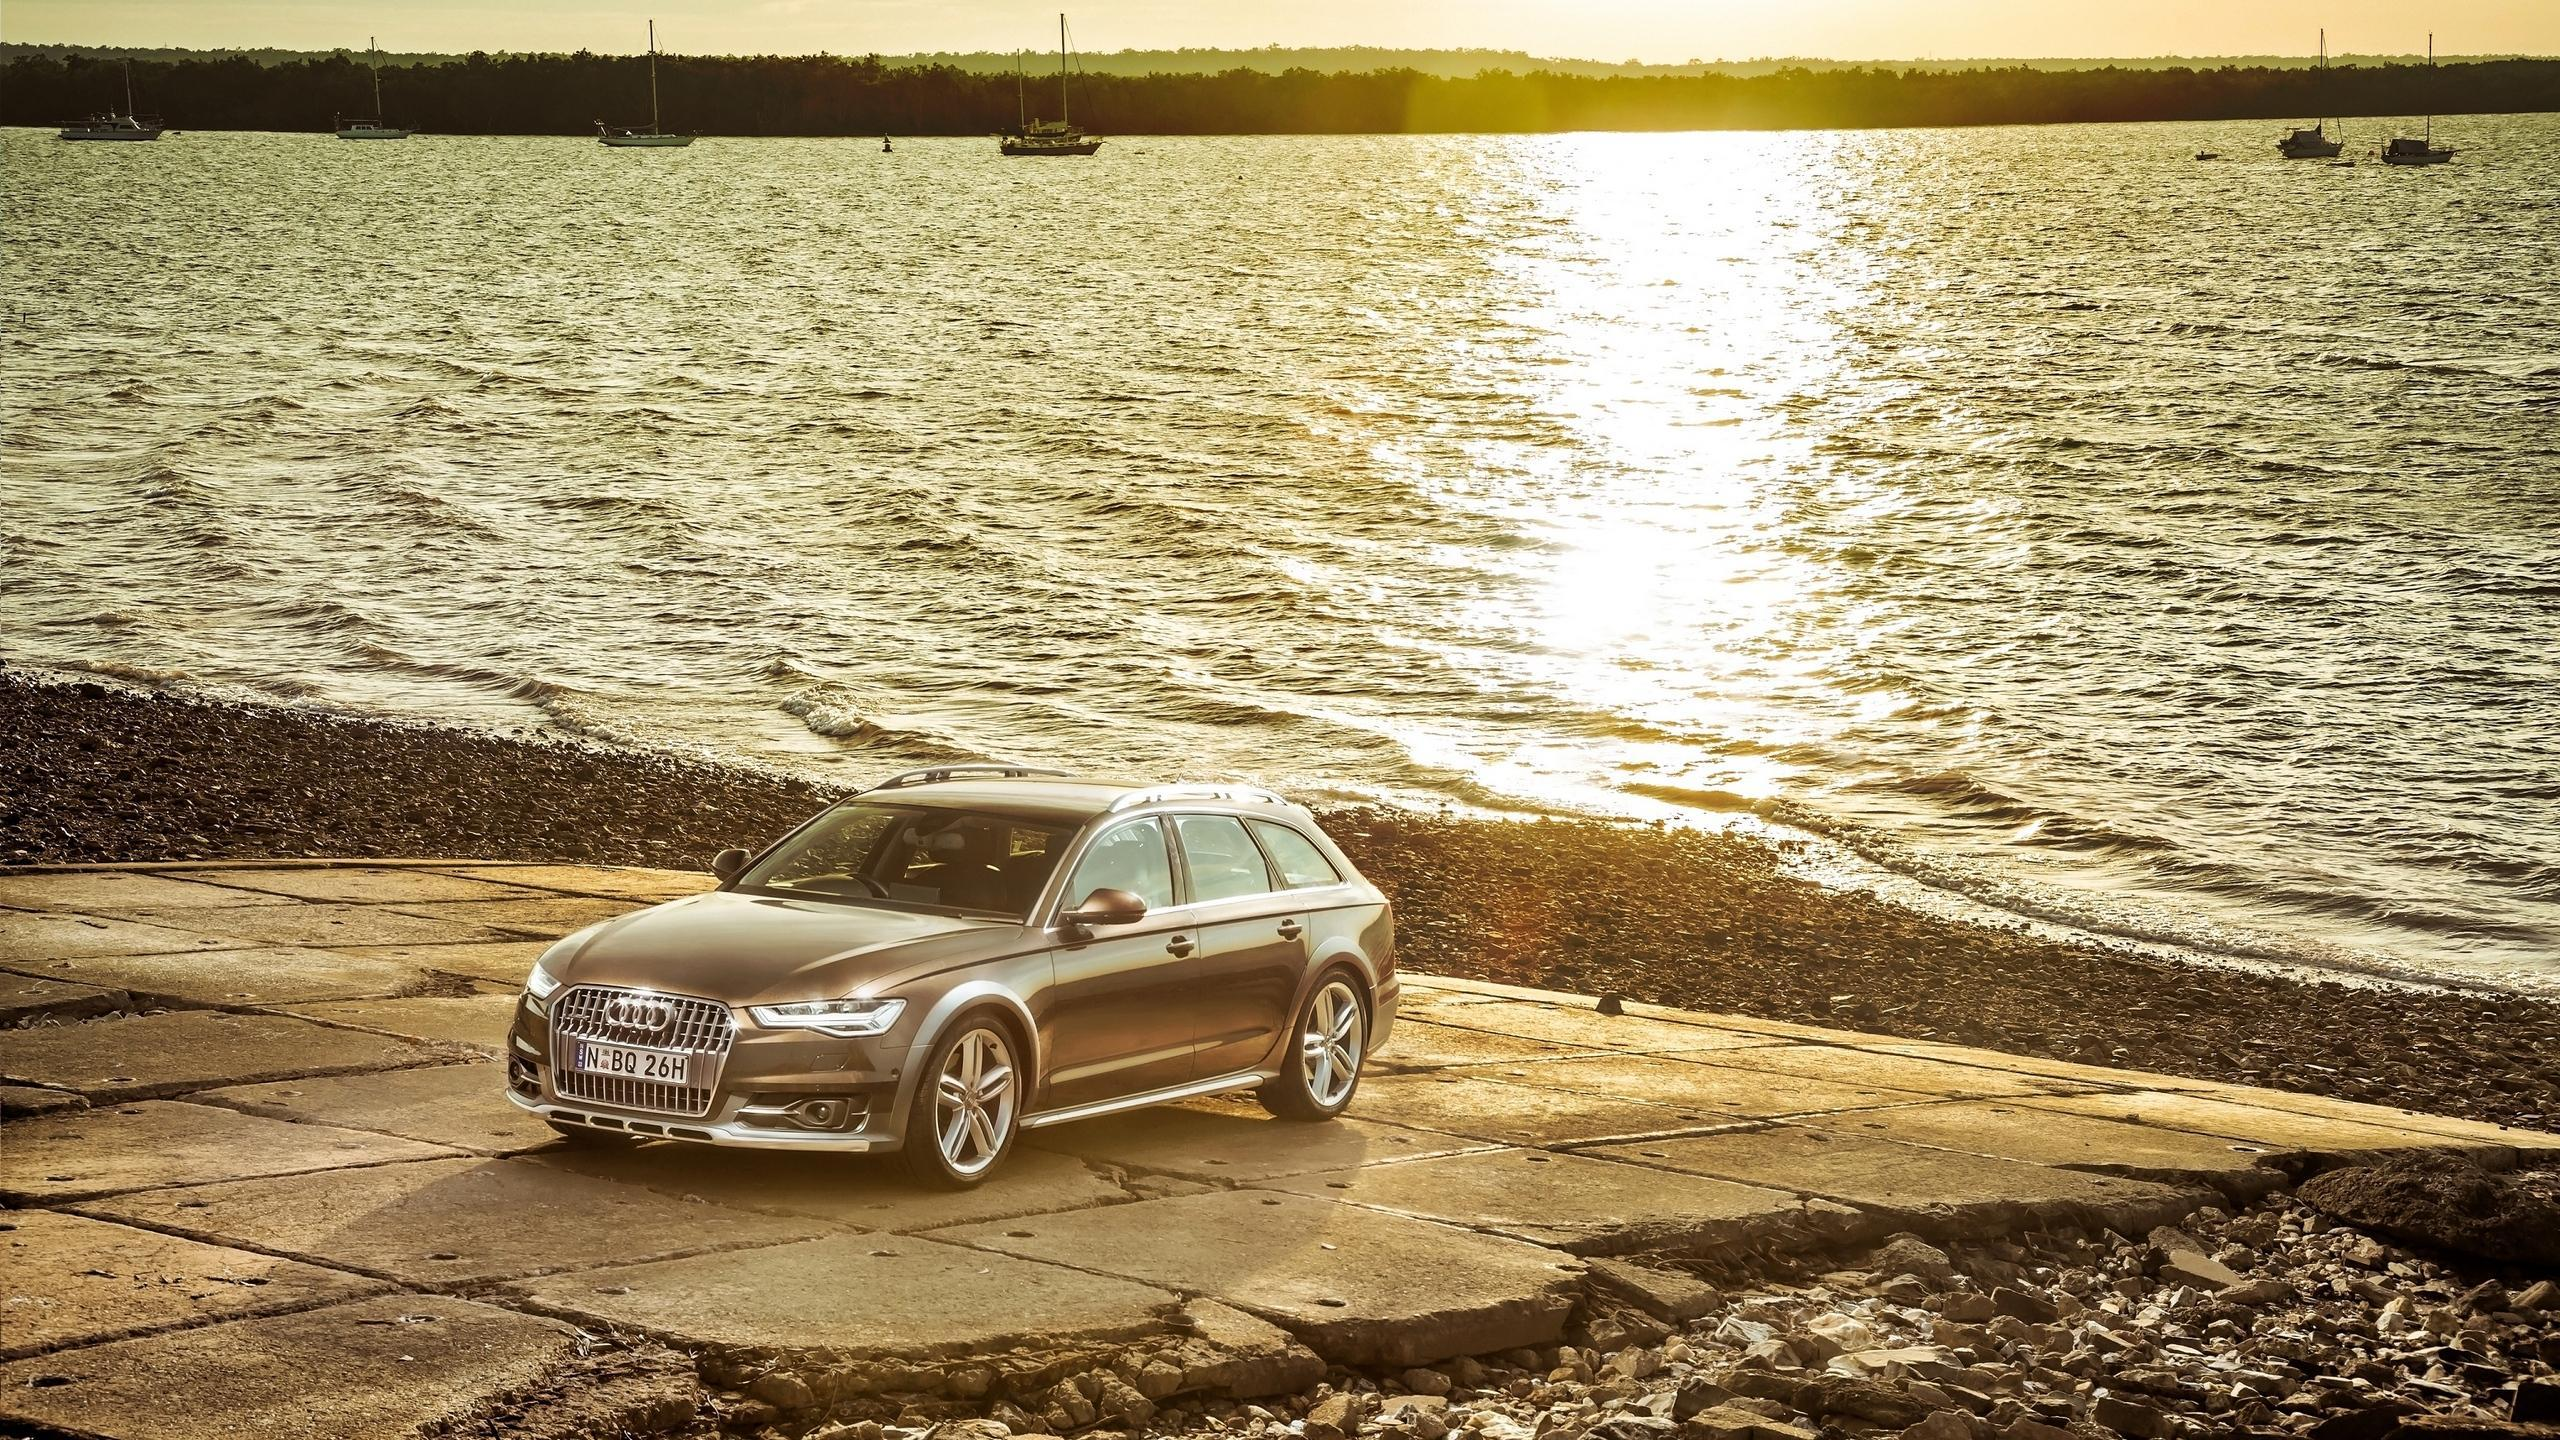 Download wallpaper 2560x1440 audi, a6, allroad, side view widescreen ...